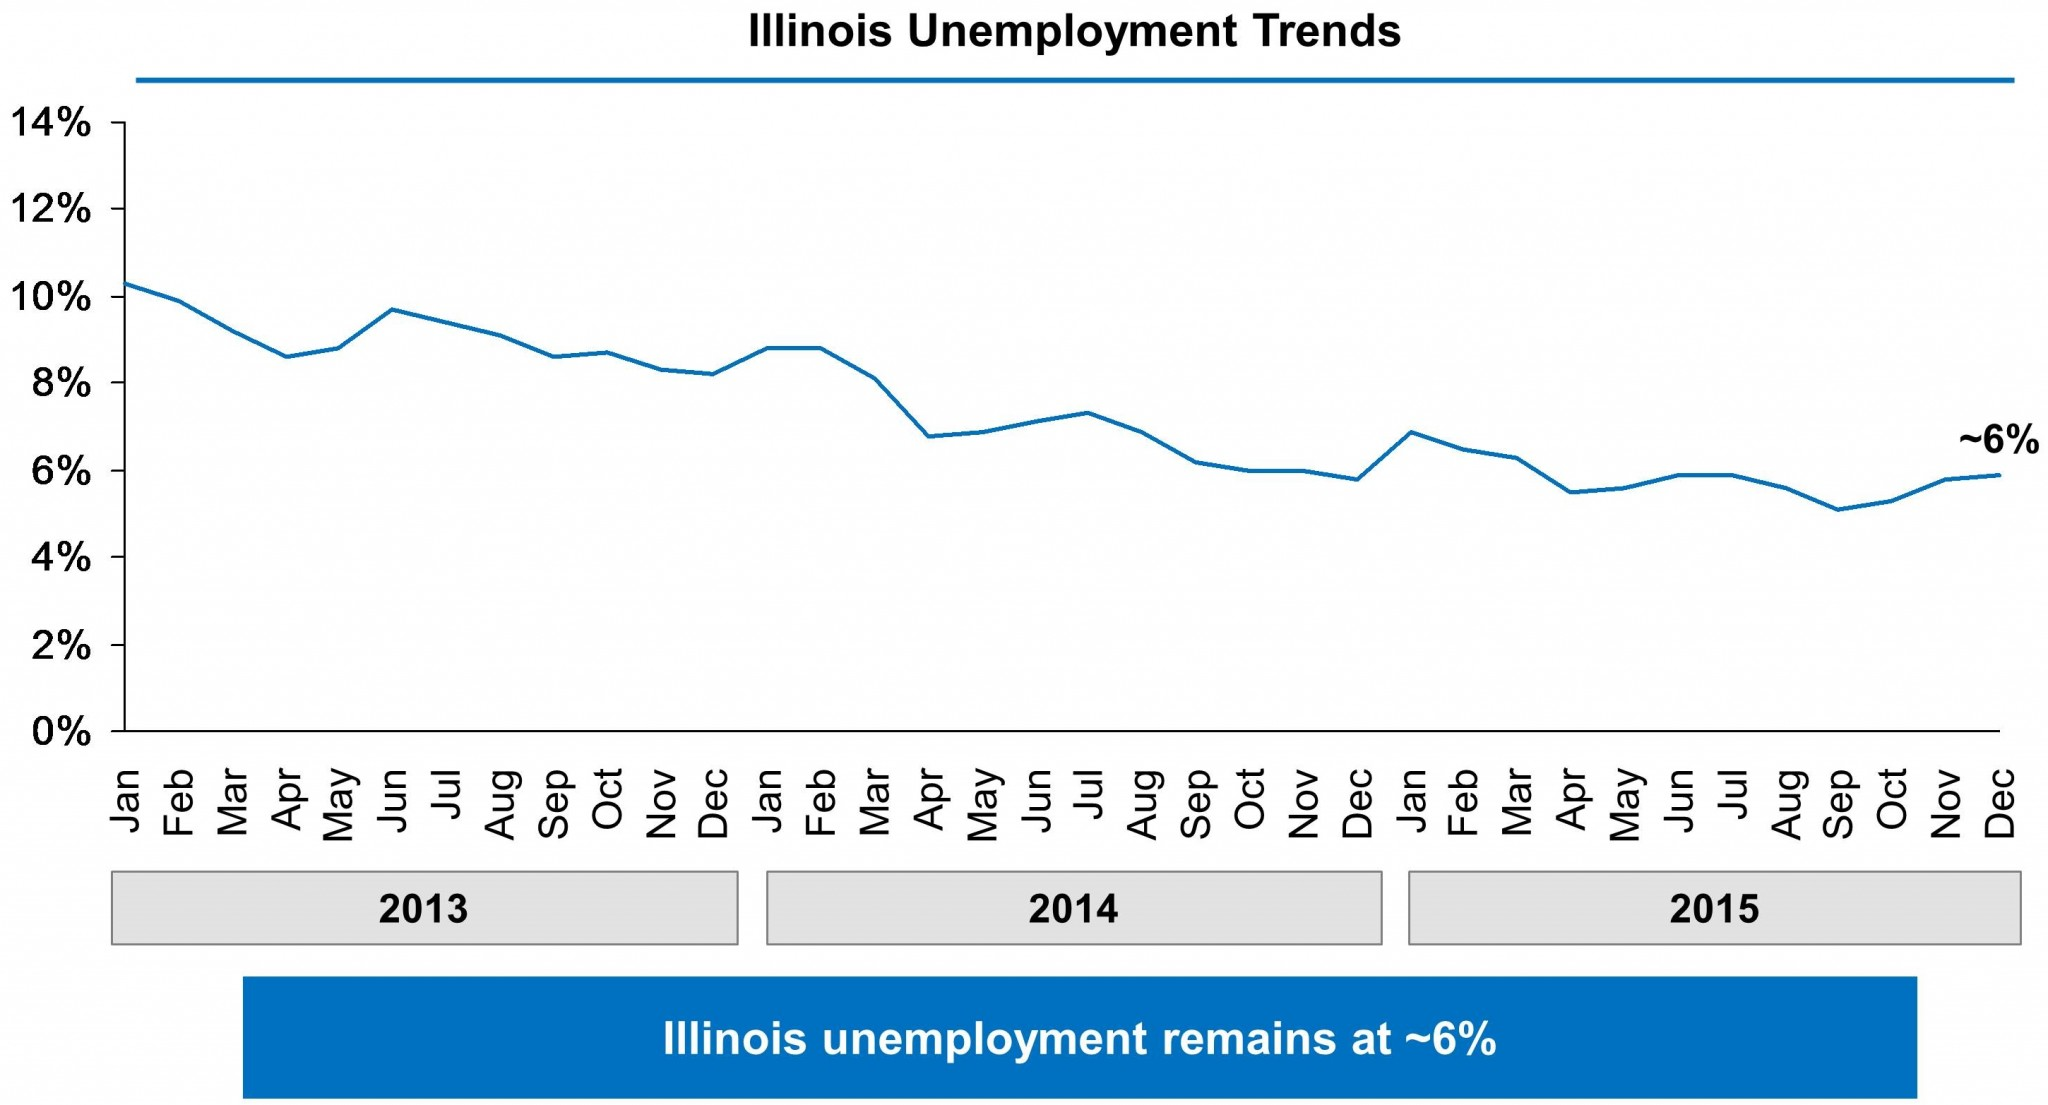 Il illinois corporate income tax rate 2015 - Il Illinois Corporate Income Tax Rate 2015 Unemployment Statistics For The State Of Illinois In